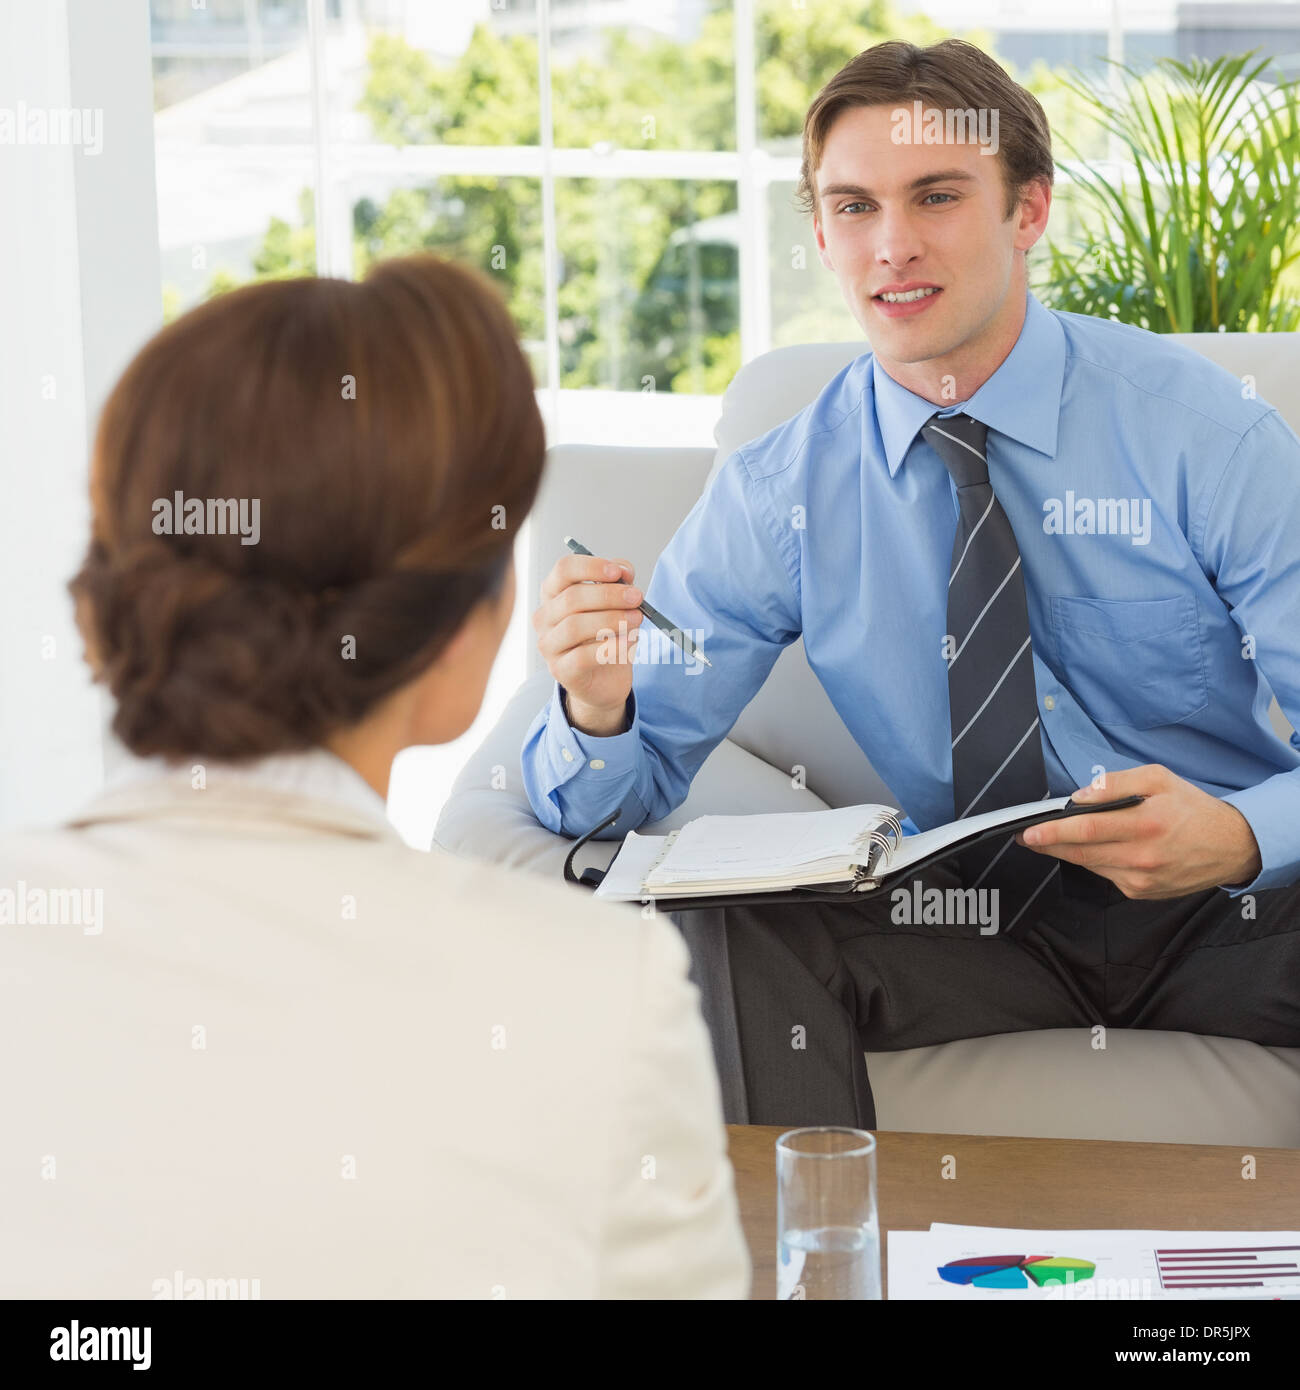 Young businessman scheduling with colleague sitting on couch - Stock Image